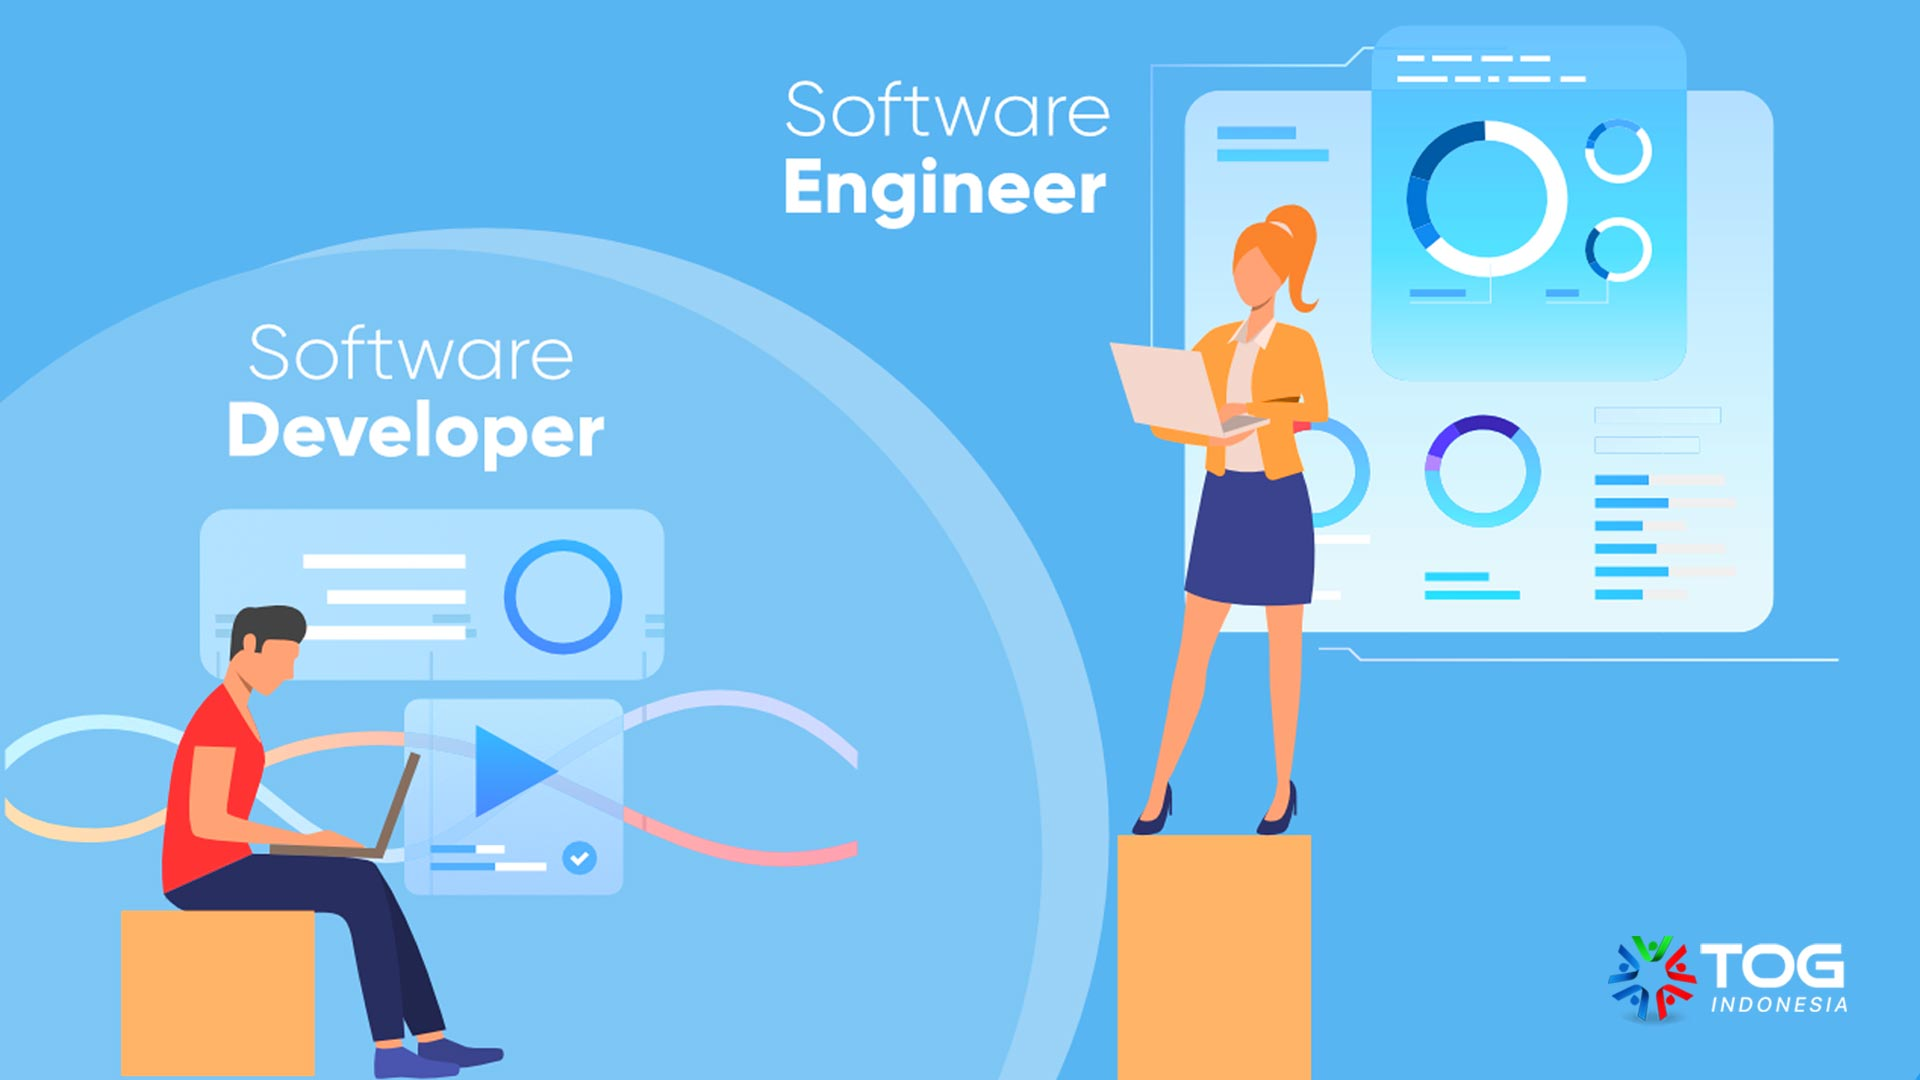 Perbedaan Software Developer